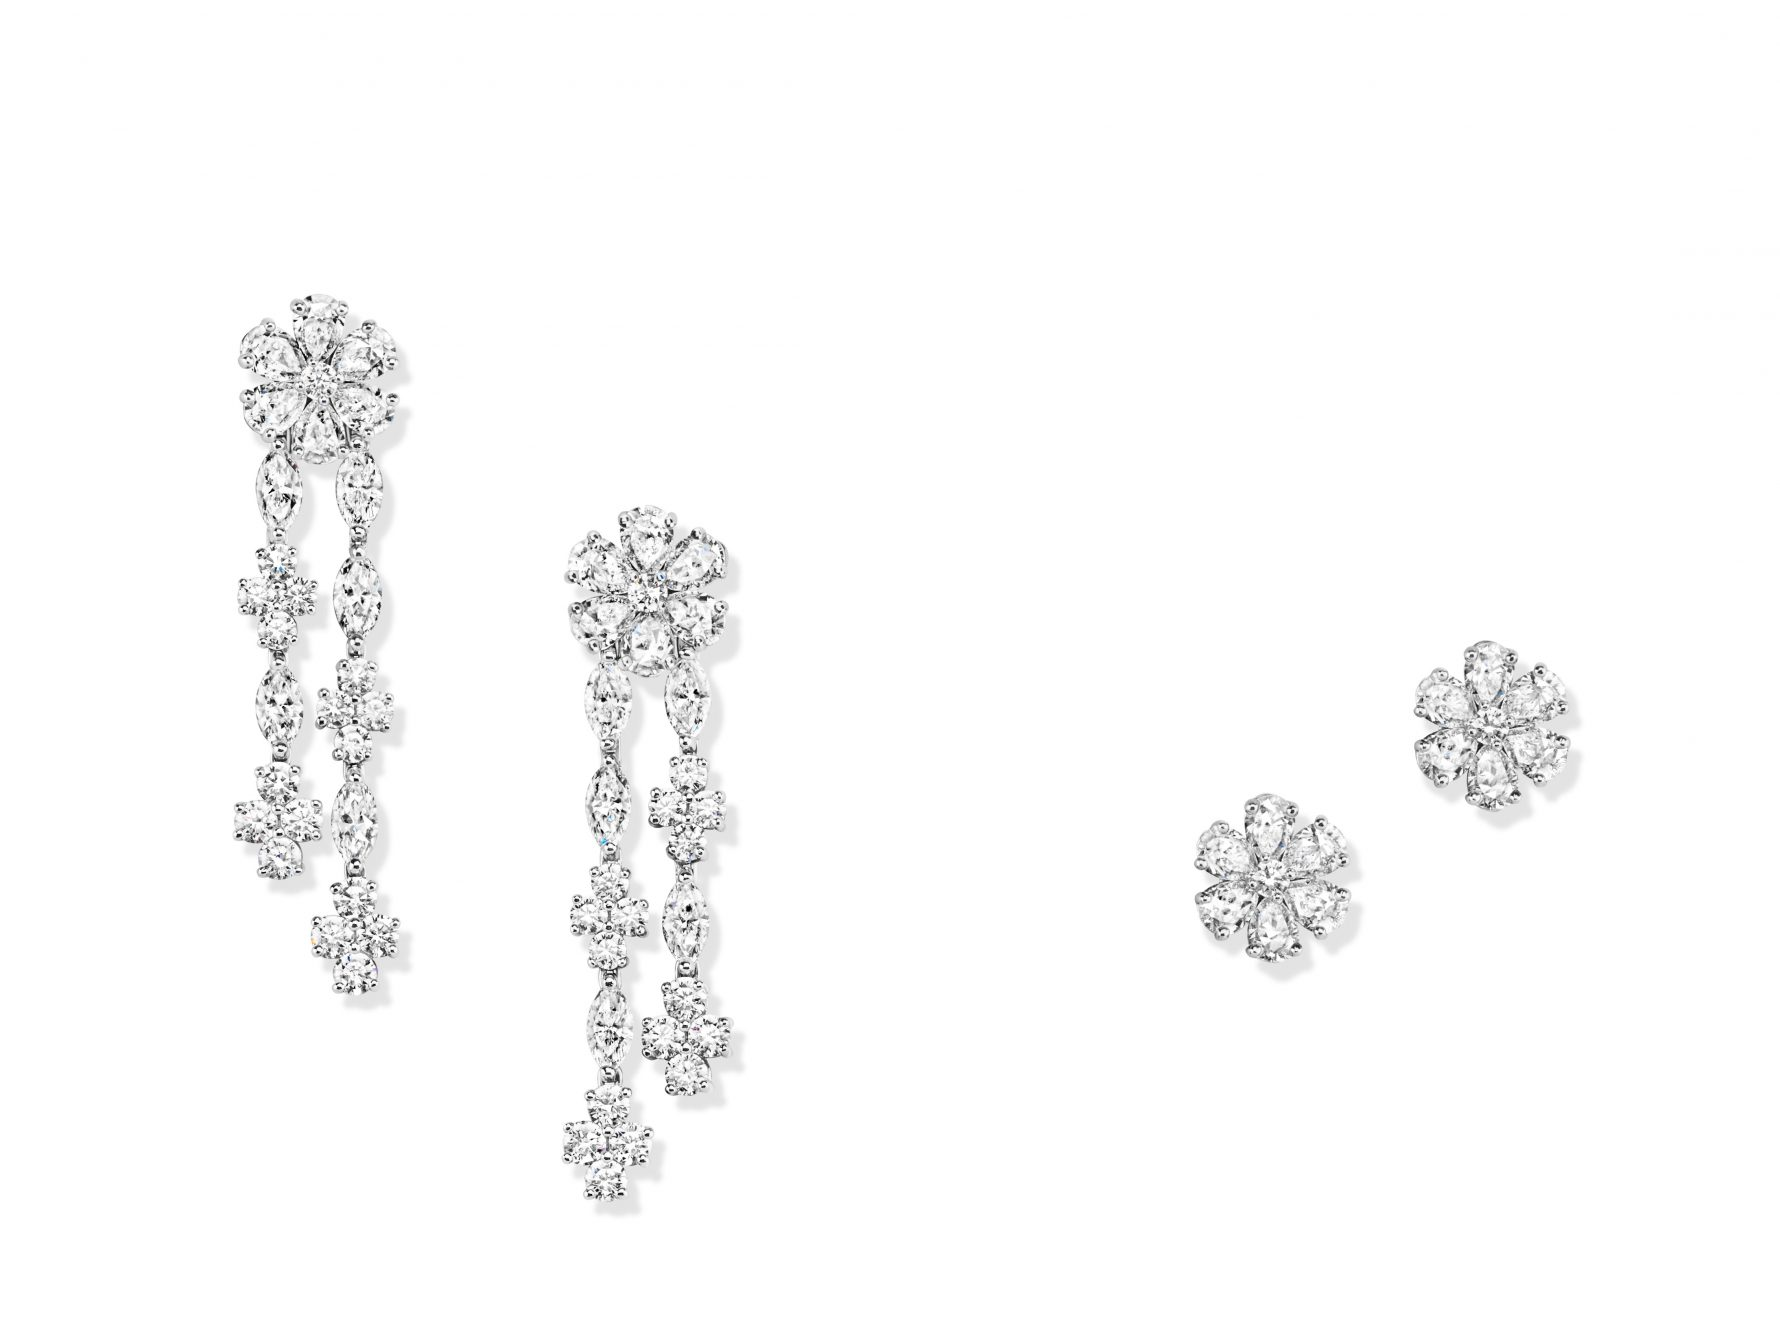 Forget-Me-Not by Harry Winston earrings